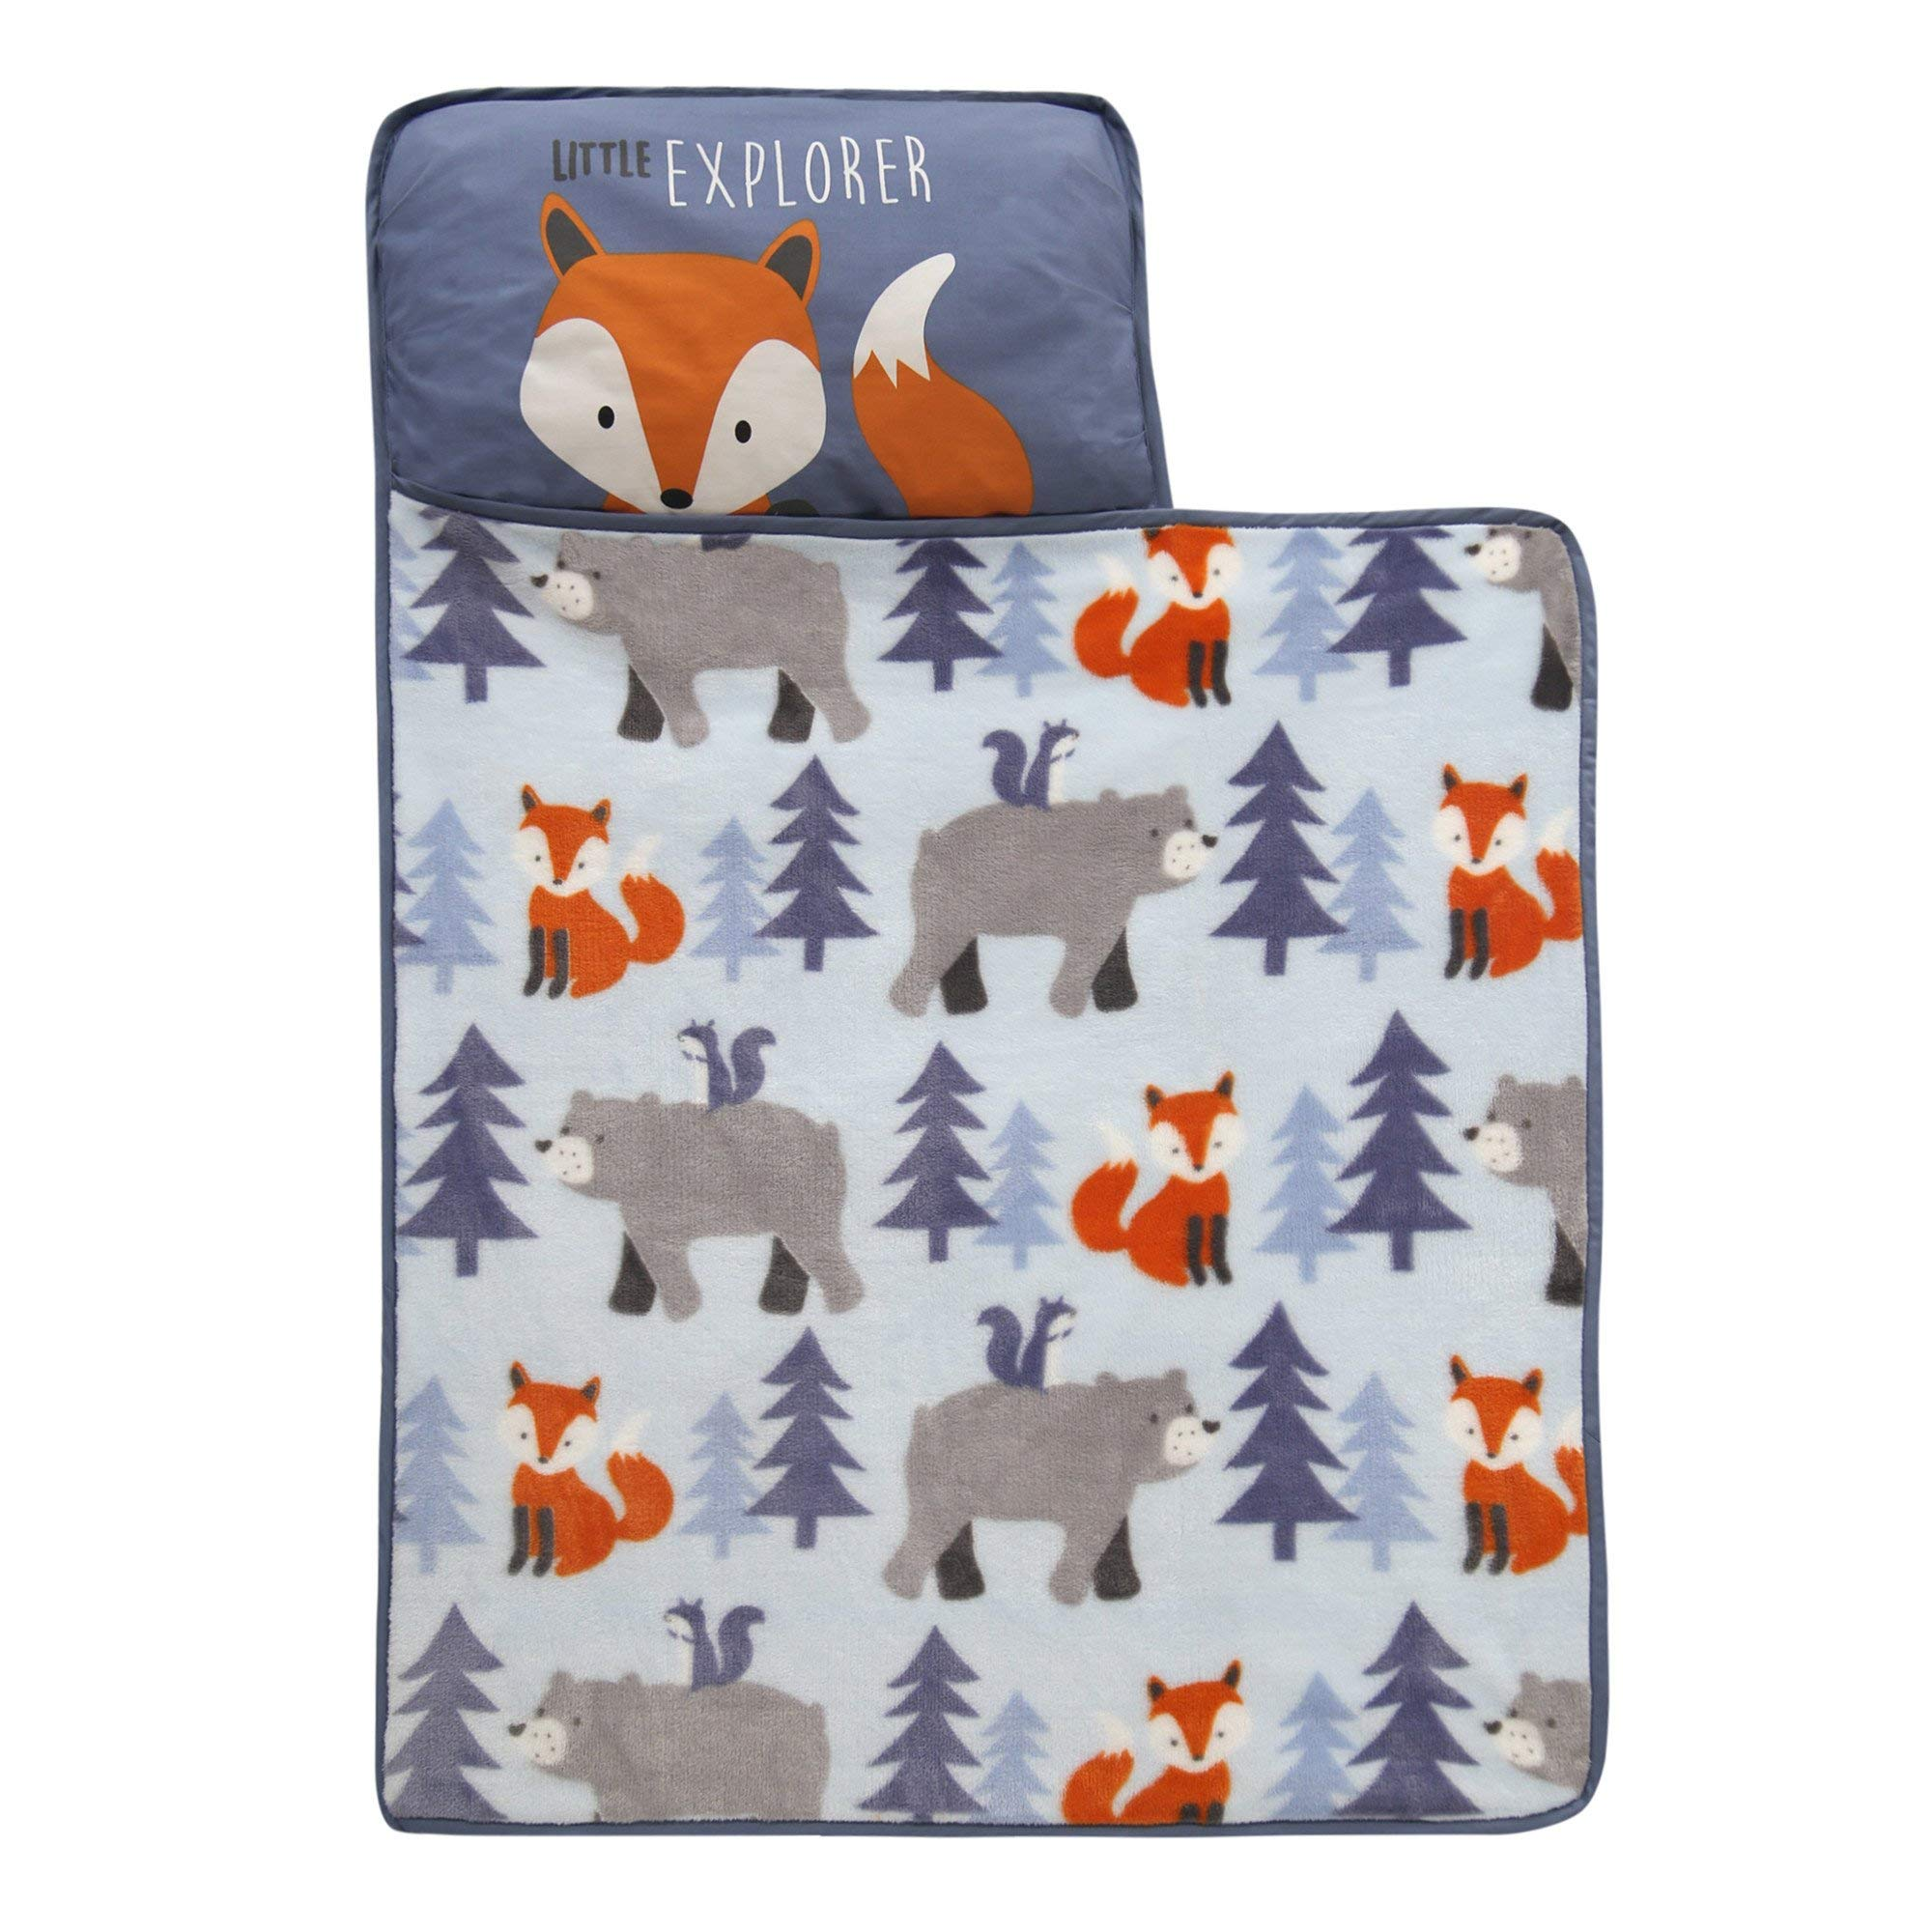 Lambs & Ivy Little Explorer Nap Mat, Blue/Gray/Orange by Lambs & Ivy